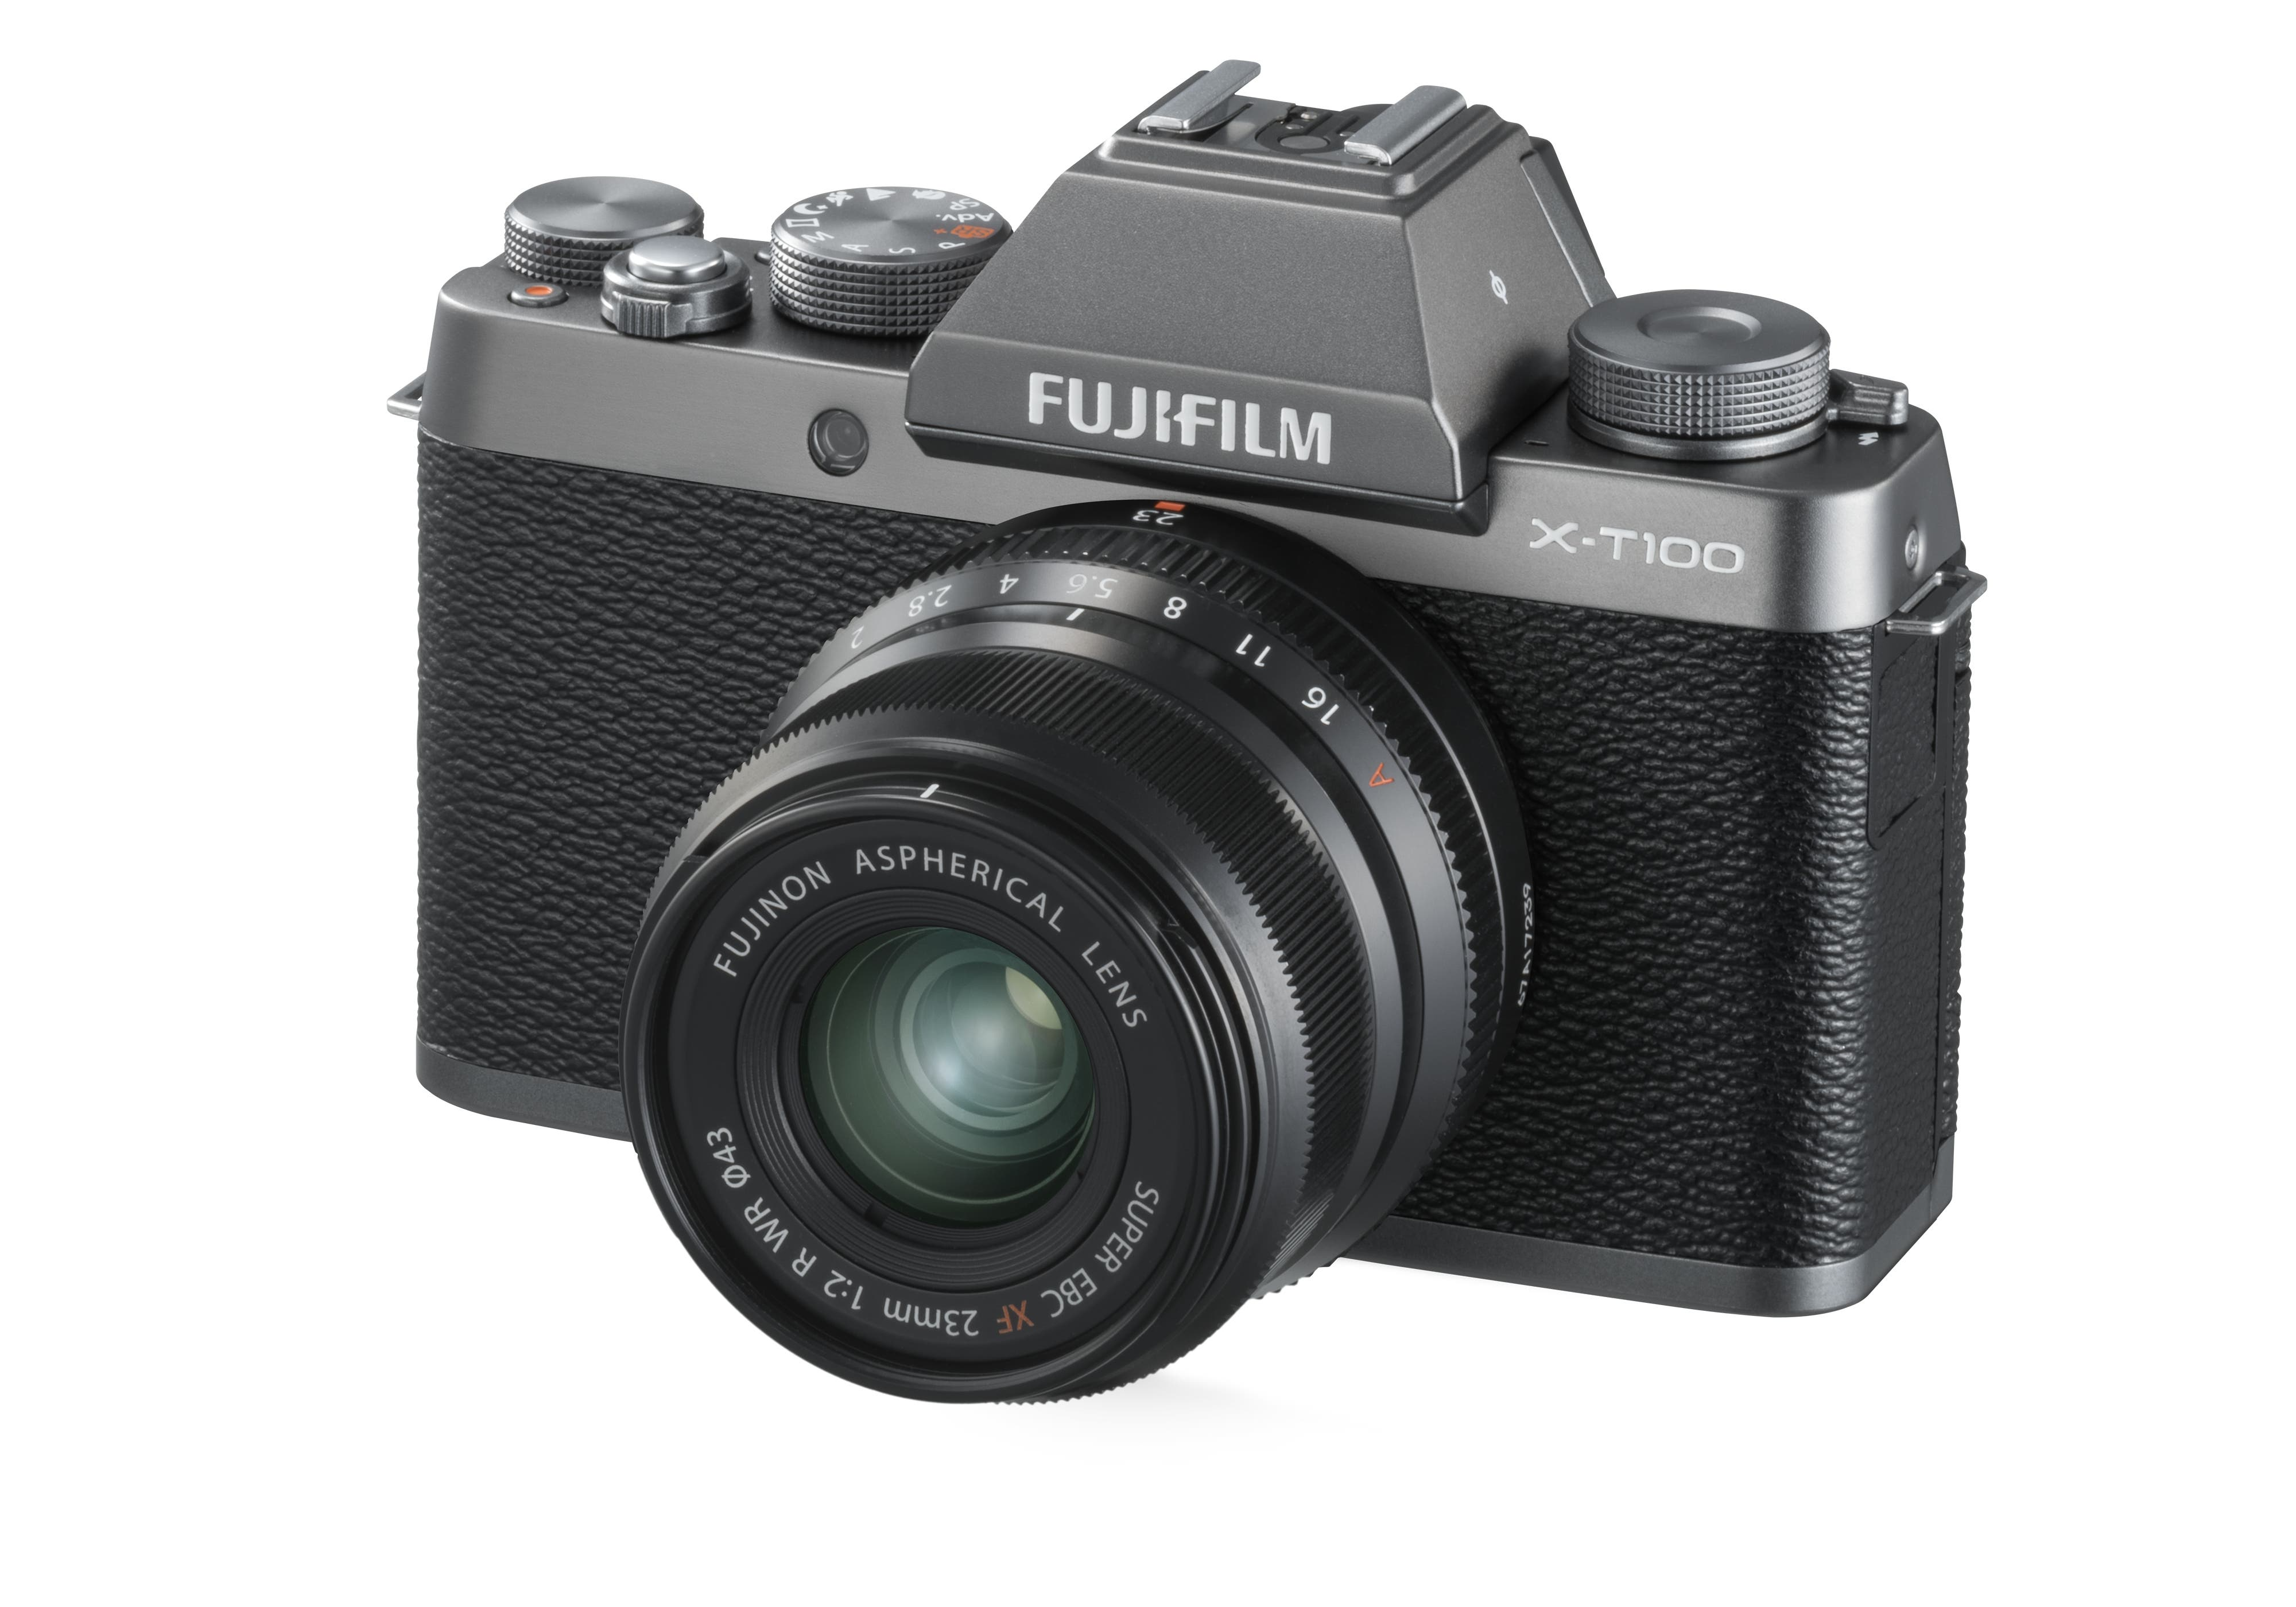 The New Fujifilm X T100 Comes In Gold For Some Reason